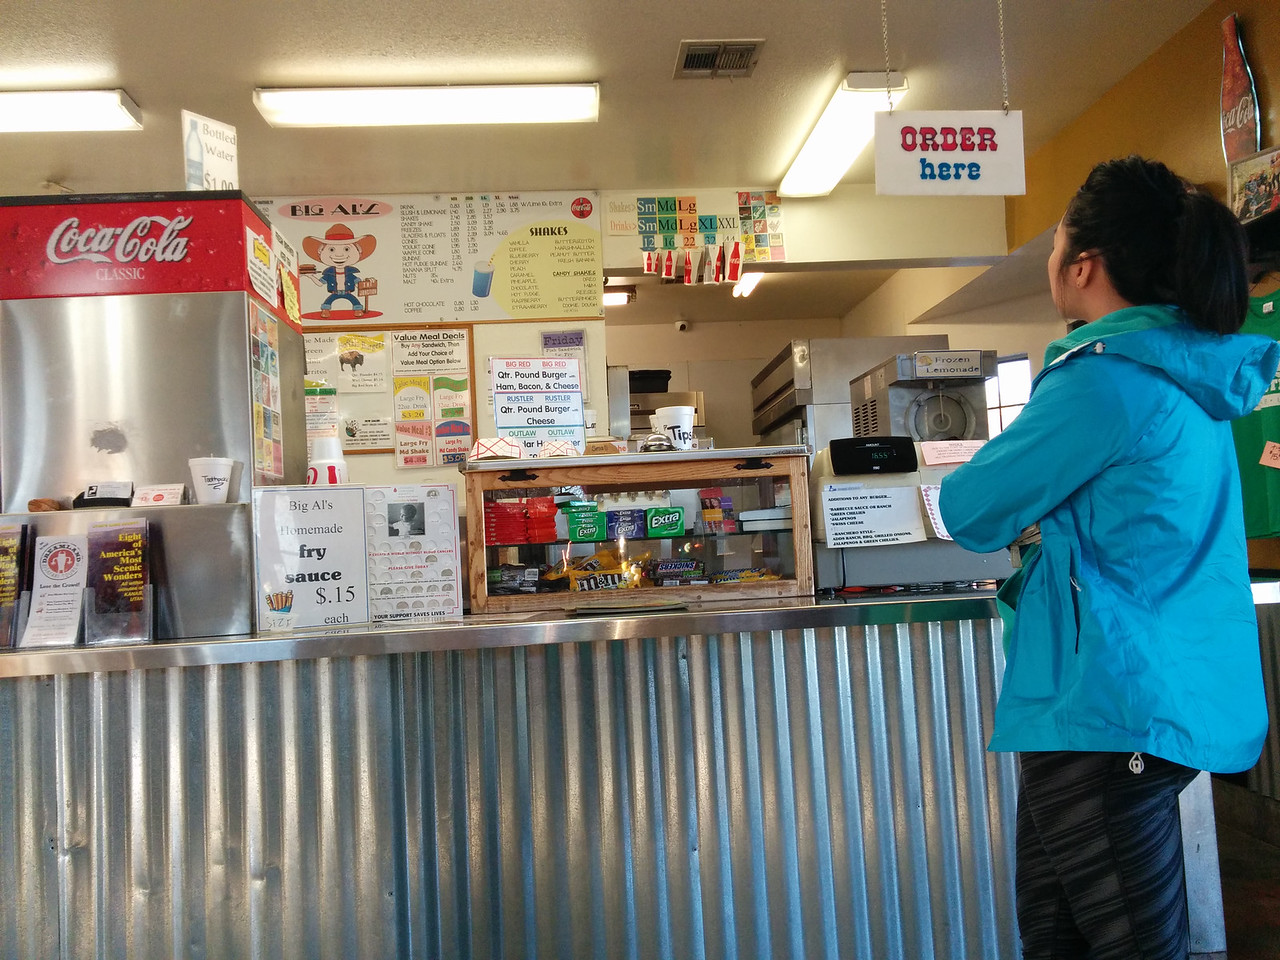 """Big Al's Burger joint -- also known as """"the Junction"""" by locals.  I ordered a buffalo burger and blueberry milkshake.  The milkshake was incredibly thick.  Took me forever to finish."""